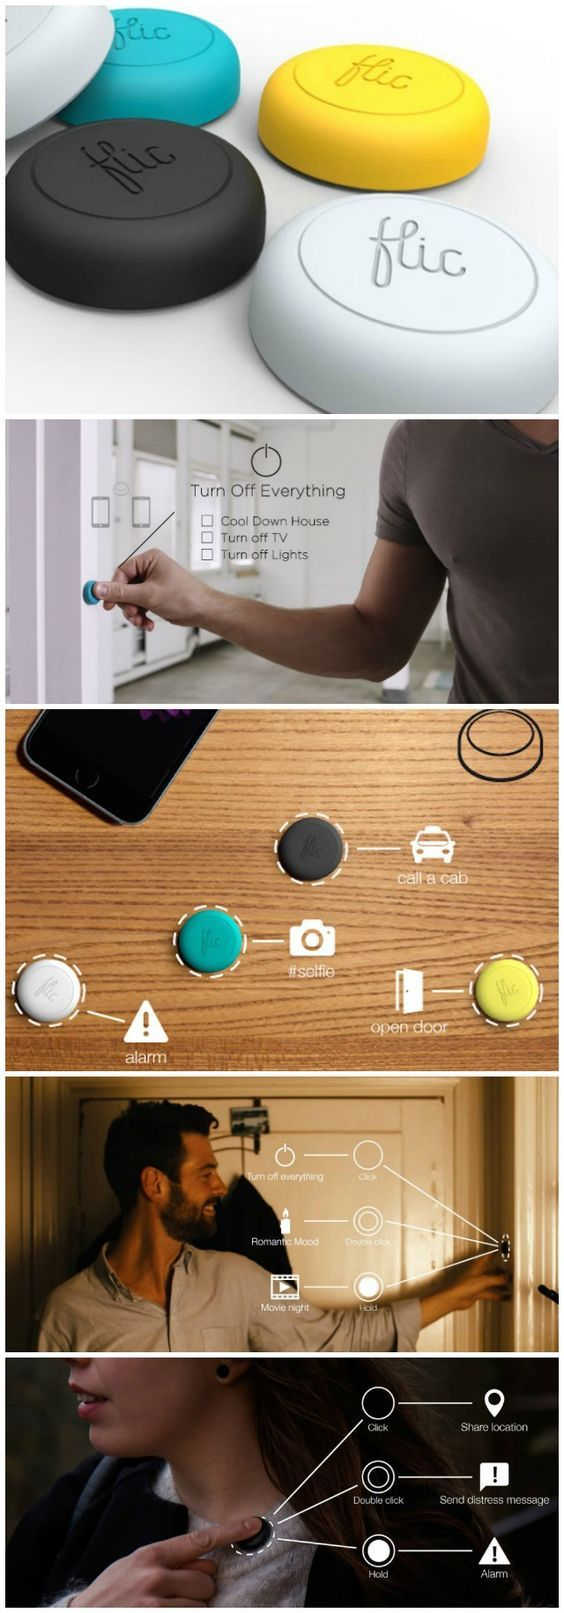 Flic is the Shortcut Button to your Phone - GetdatGadget #electronicgadgets